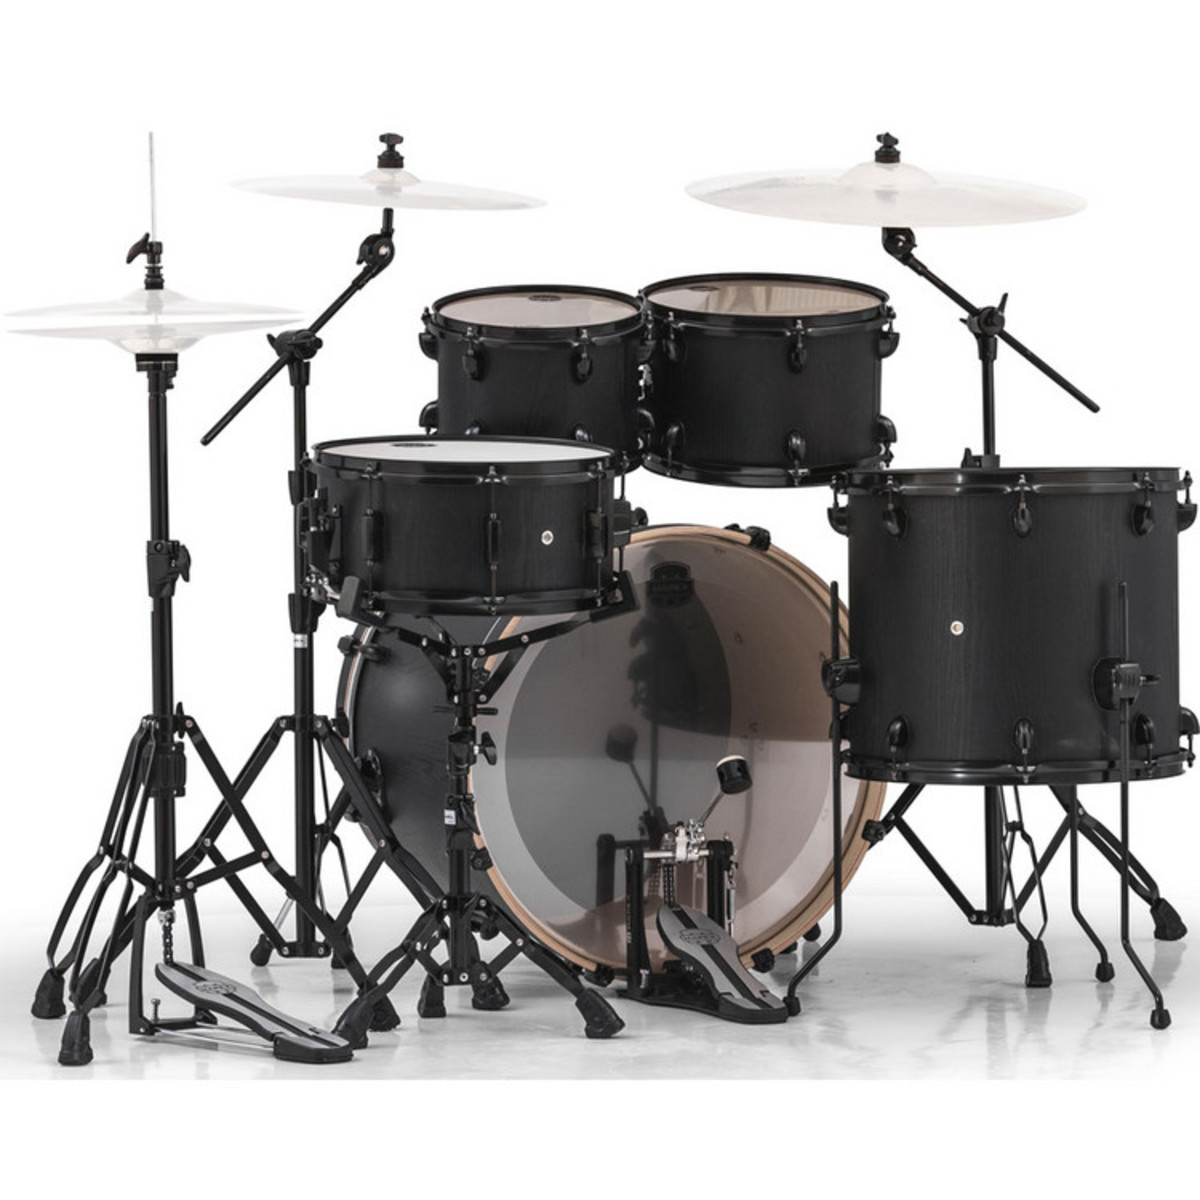 gear4music drum kit assembly instructions